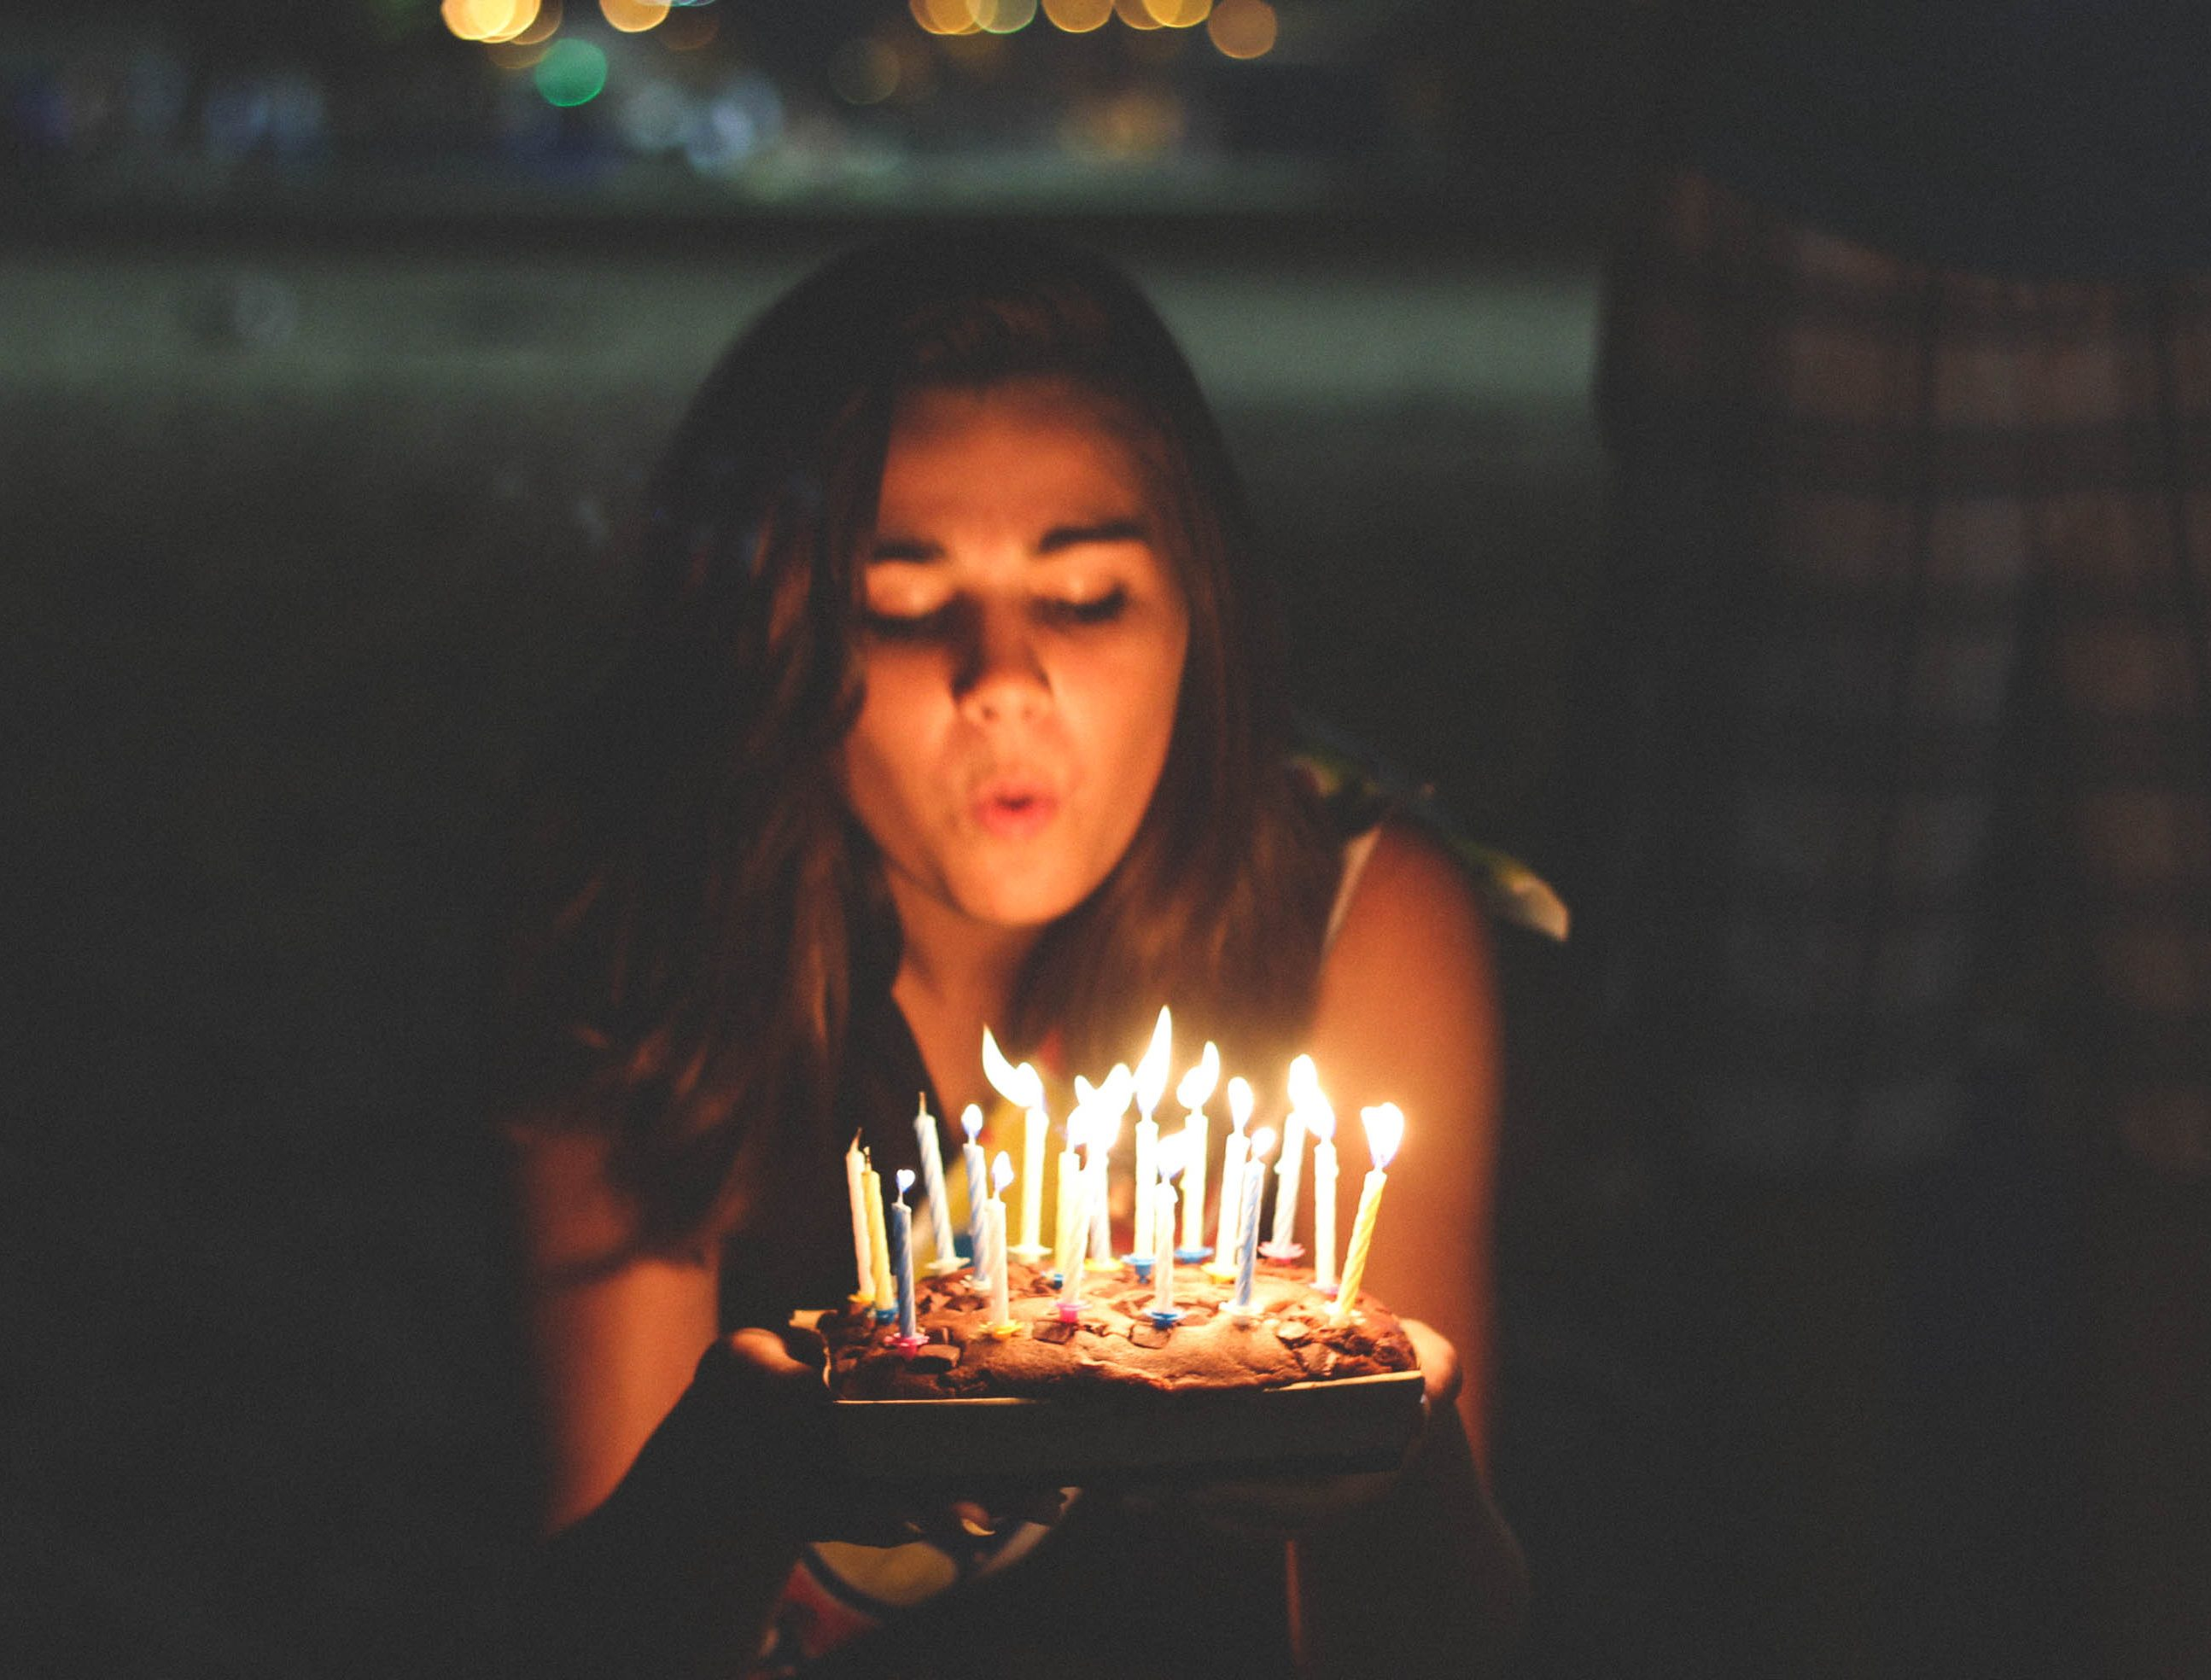 Girl blowing her birthday cake